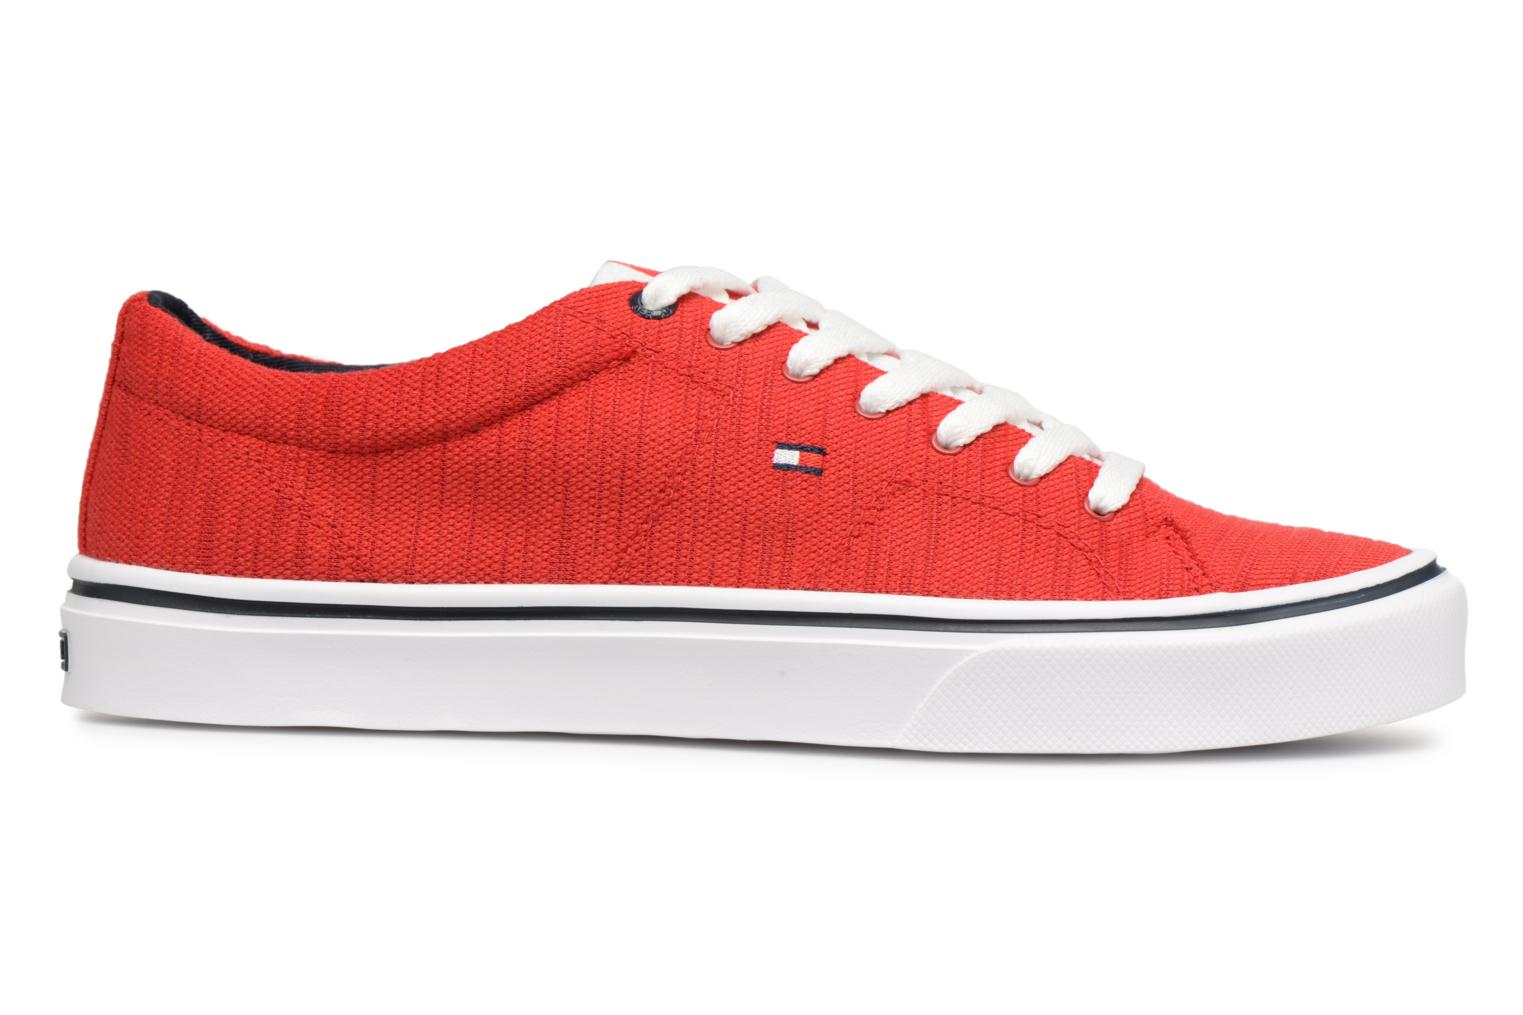 Baskets Tommy Hilfiger Sneakers Tango Red Rouge vue derrière